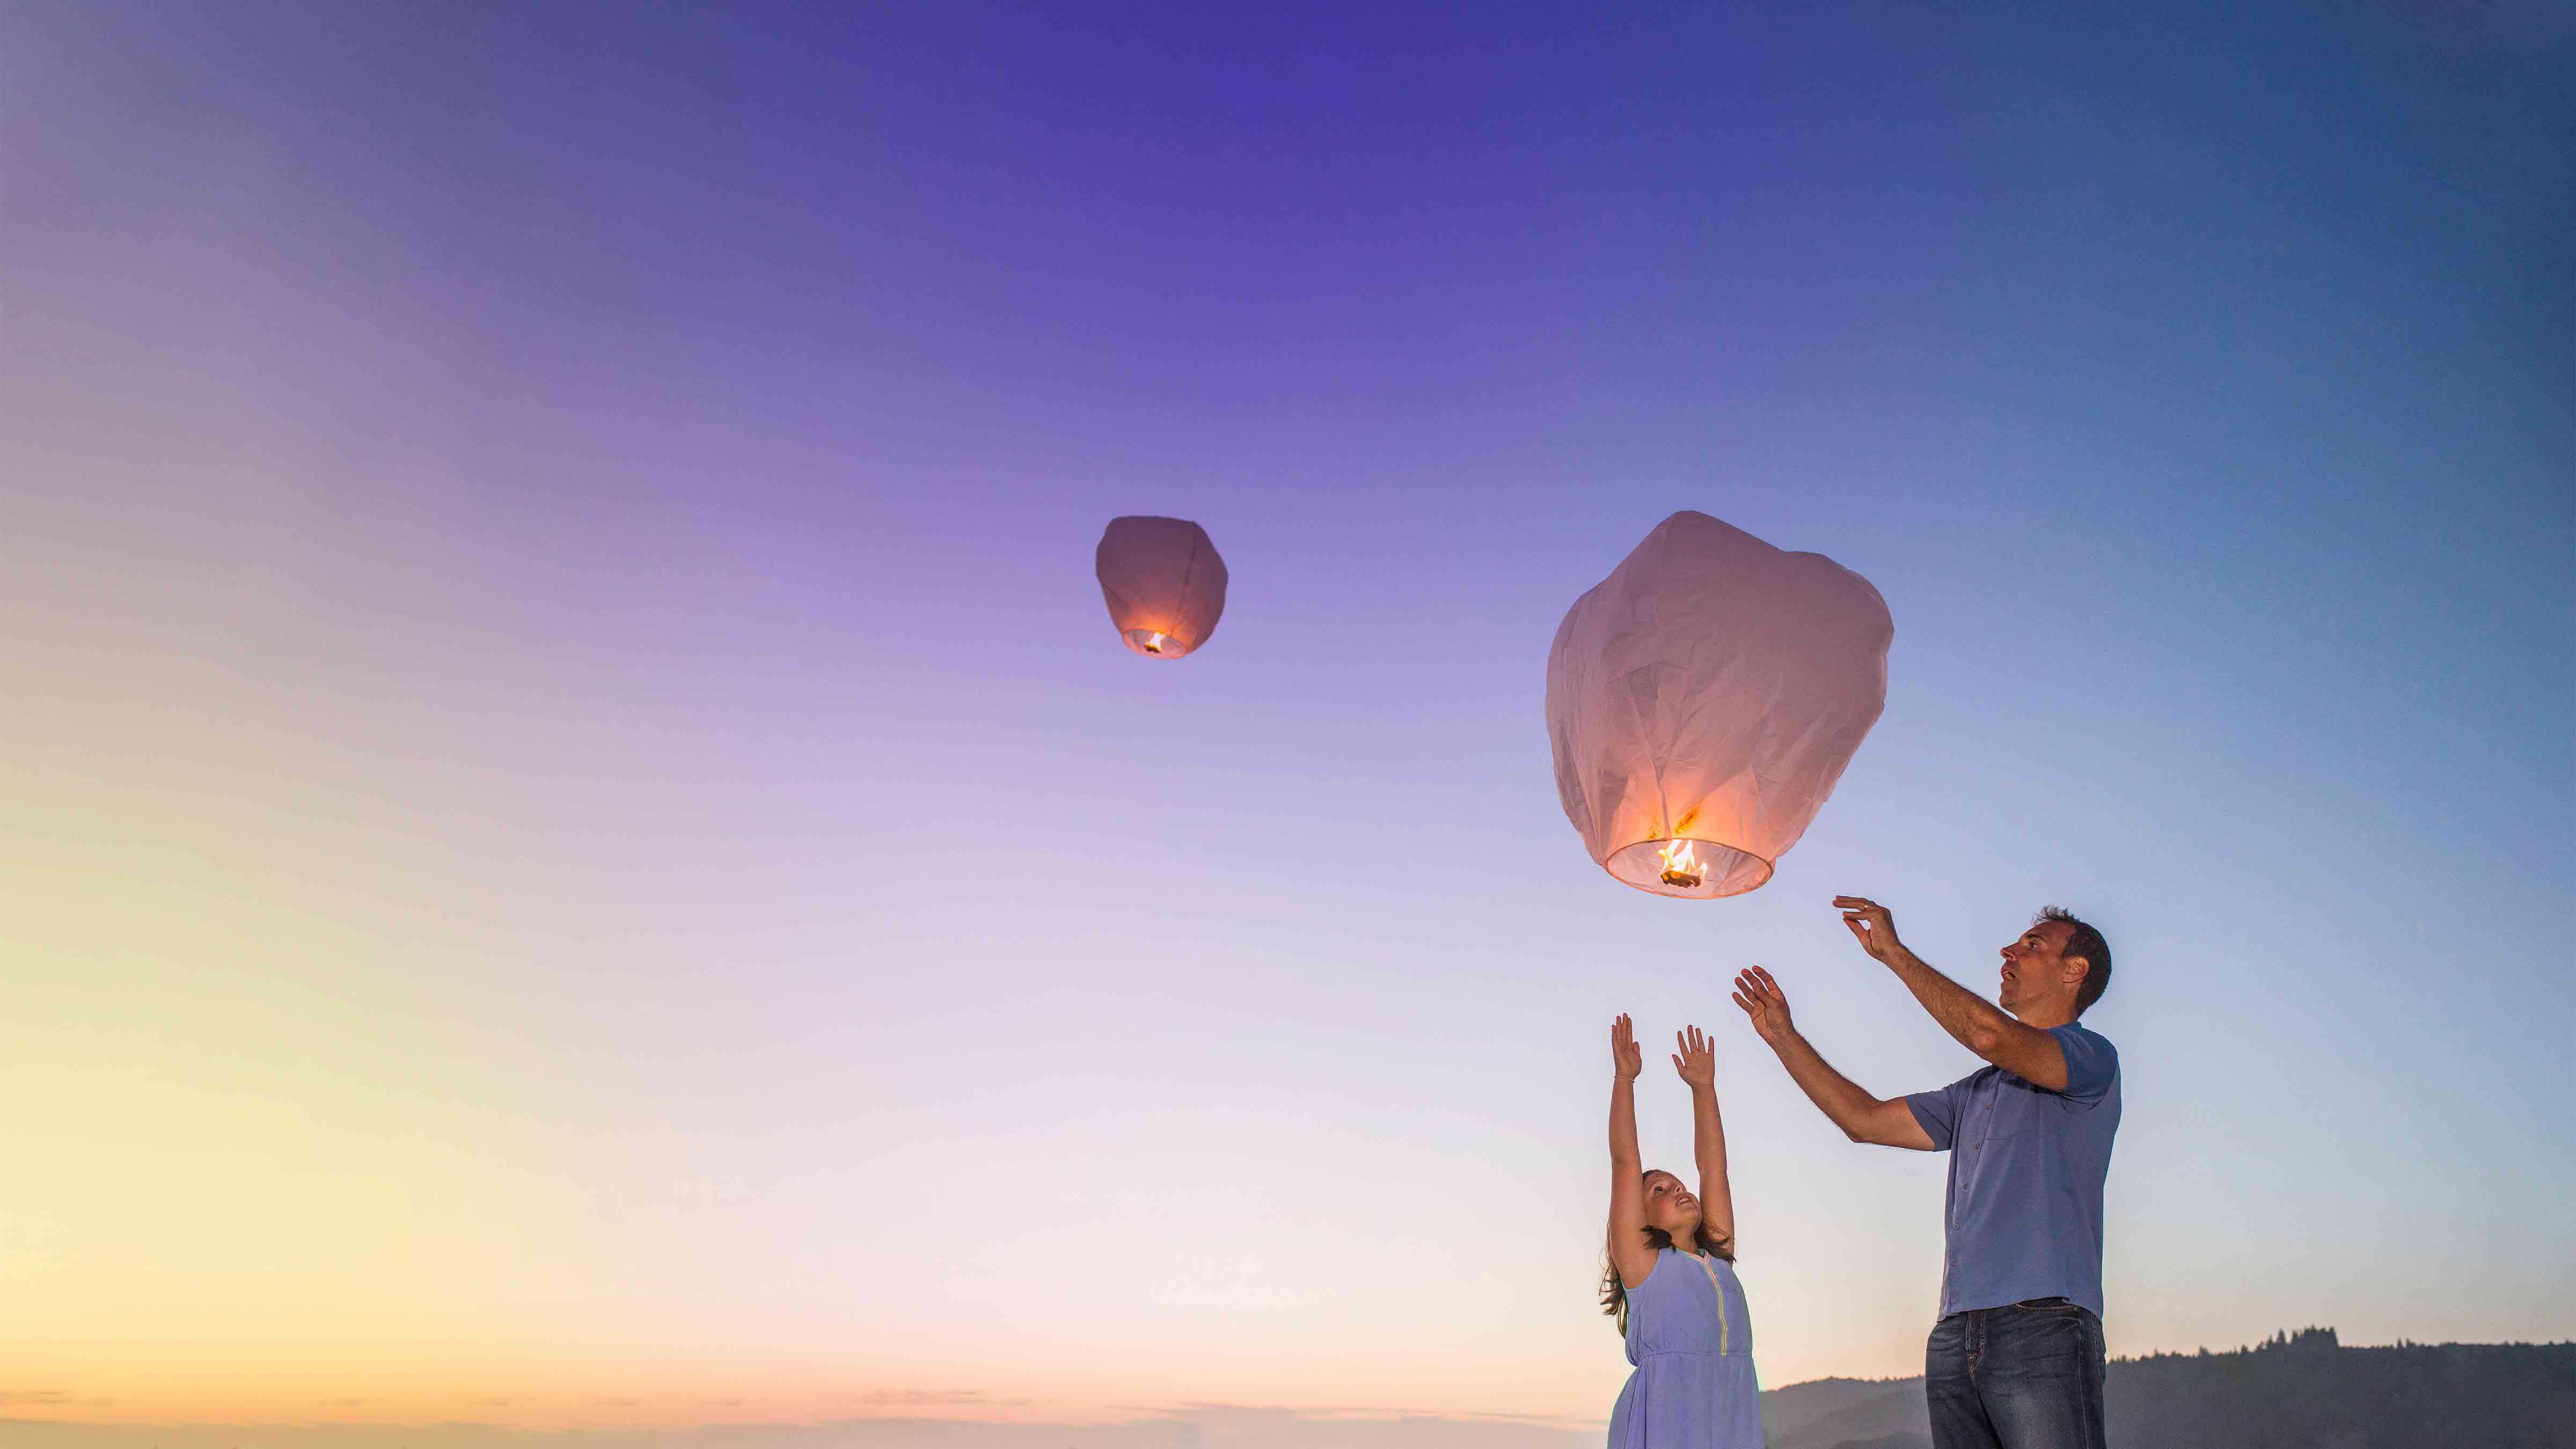 Father and daughter release white paper lanterns into the sky